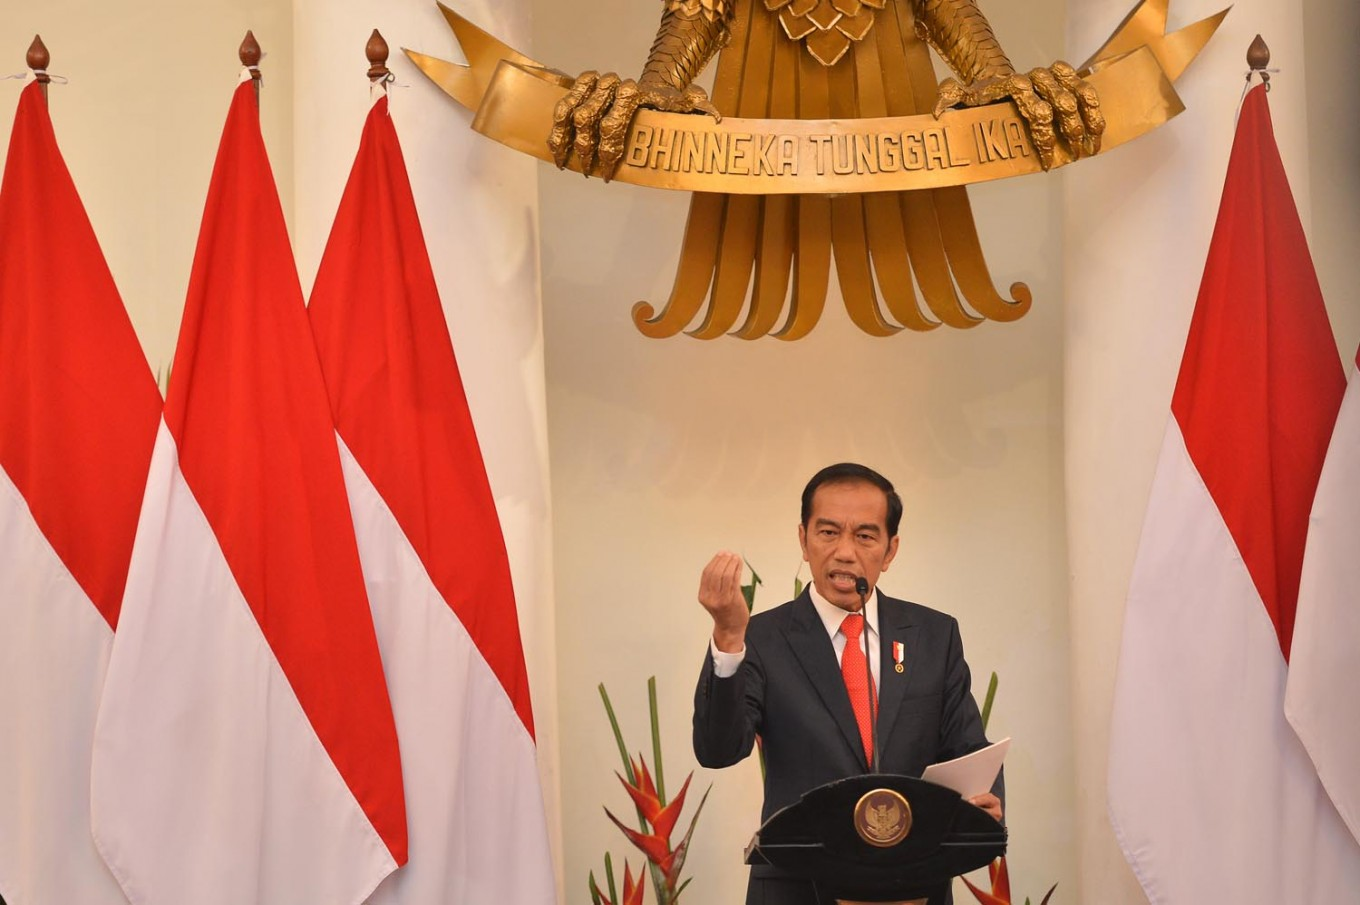 What will Jokowi's legacy be in climate change?